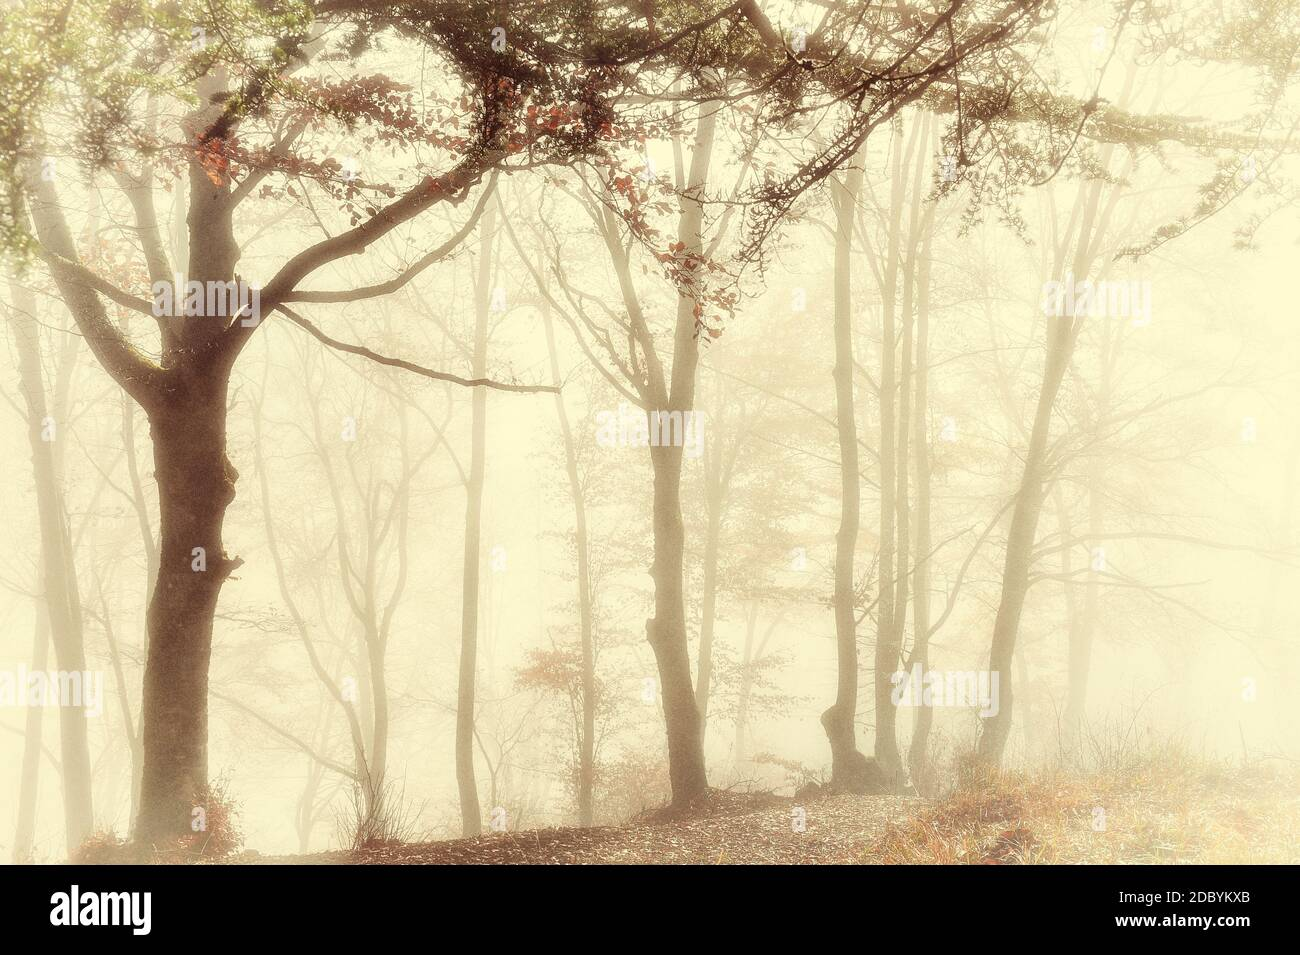 the morning mist in a group of beech trees in the mountains  and the light through the trees and the fog creates a magical atmosphere with vintage and Stock Photo